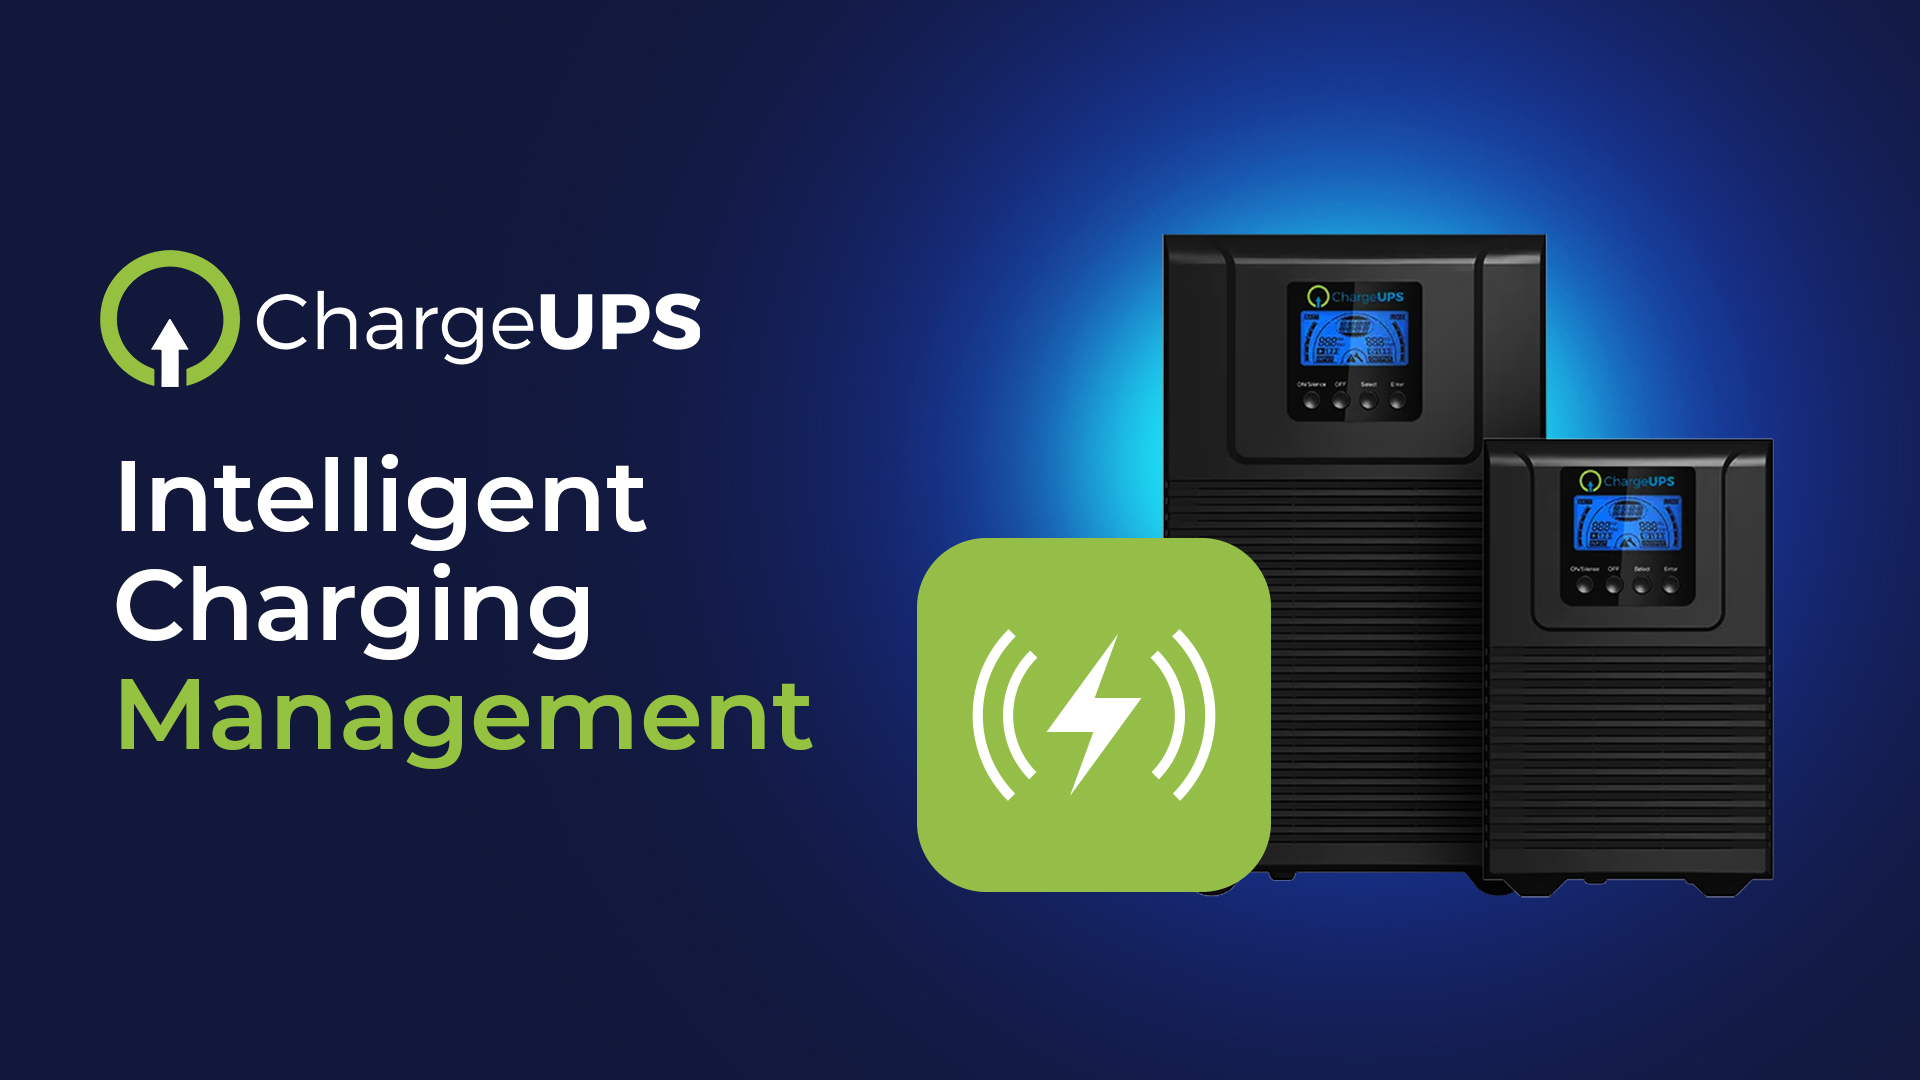 ChargeUPS Intelligent Charging Management